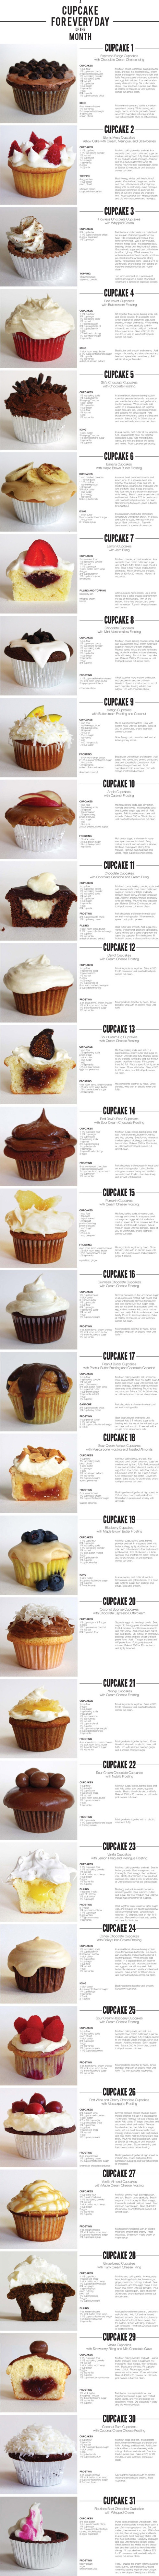 Cupcakes for everyday #Infographic